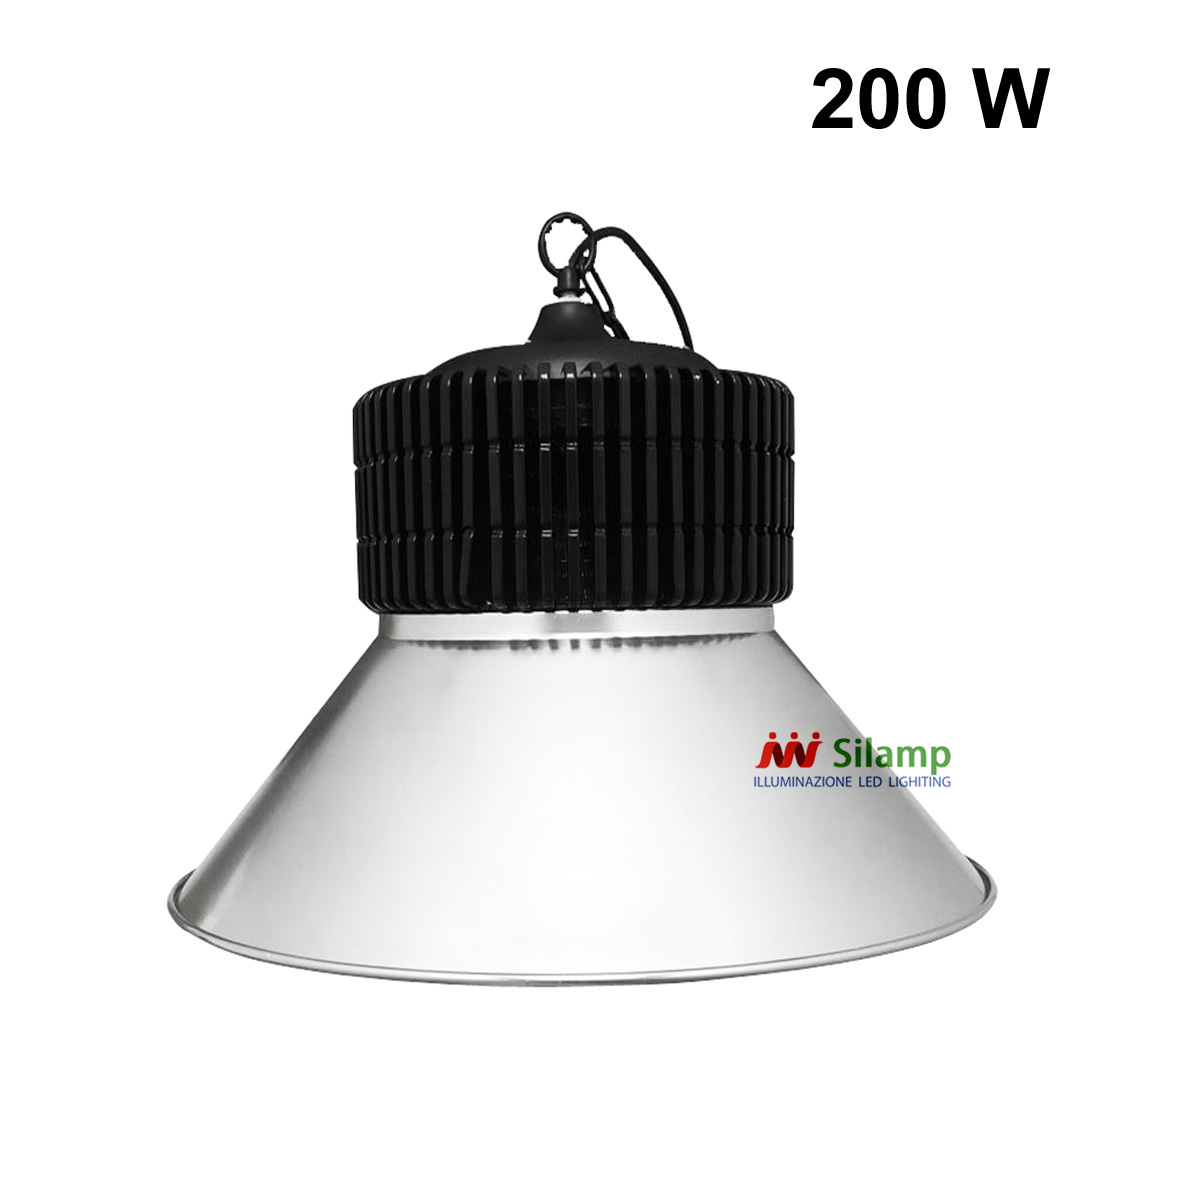 Headlight Projector Industrial LED 200w cover, bell shaped, SILVER led